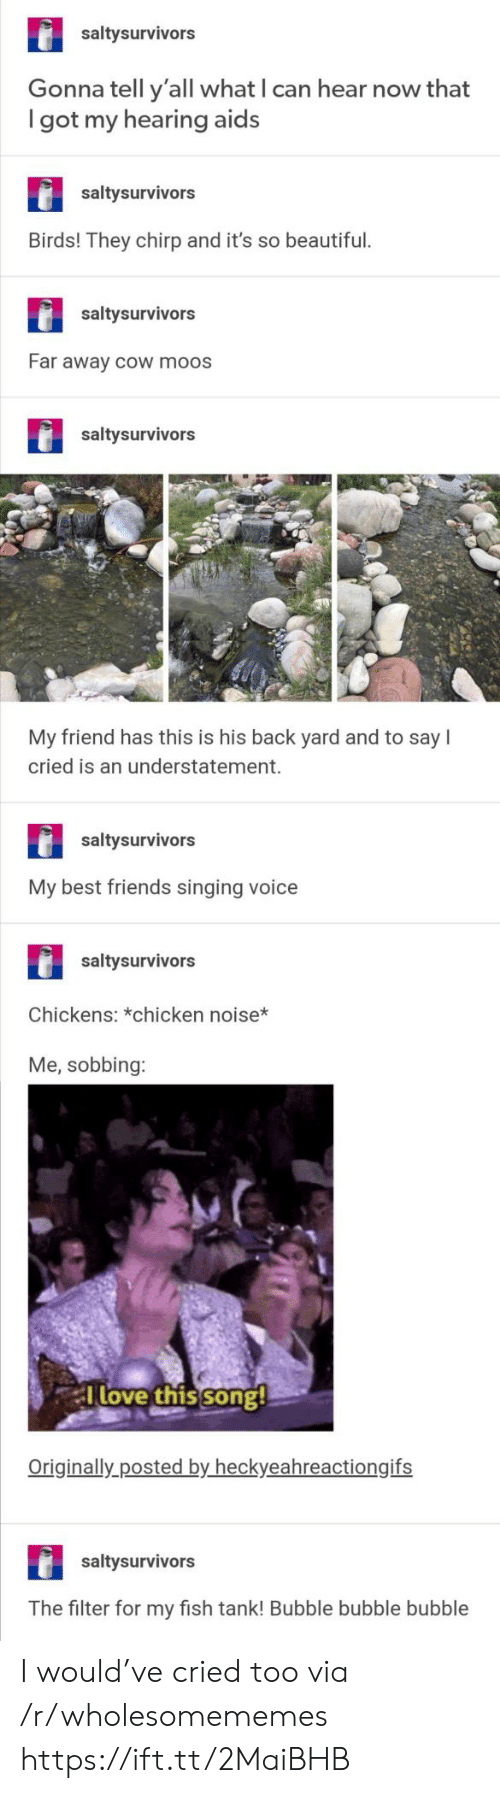 sobbing: saltysurvivors  Gonna tell y'all what I can hear now that  got my hearing aids  saltysurvivors  Birds! They chirp and it's so beautiful.  saltysurvivors  Far away cOw moos  saltysurvivors  My friend has this is his back yard and to say  cried is an understatement.  saltysurvivors  My best friends singing voice  saltysurvivors  Chickens: *chicken noise*  Me, sobbing:  Tlove this song!  Originally posted by heckyeahreactiongifs  saltysurvivors  The filter for my fish tank! Bubble bubble bubble I would've cried too via /r/wholesomememes https://ift.tt/2MaiBHB